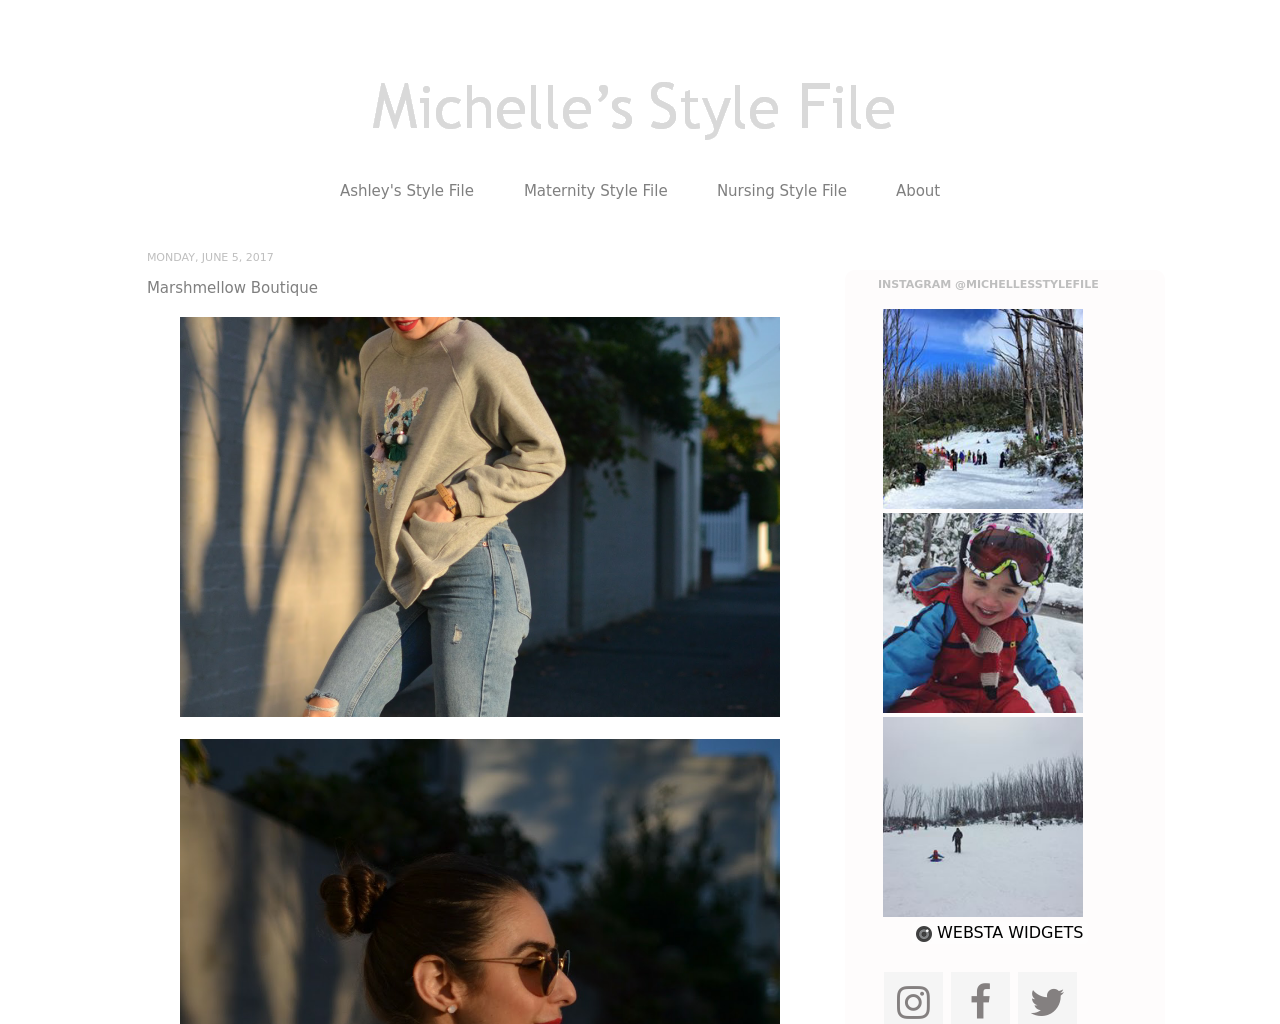 Michelle's-Style-File-Advertising-Reviews-Pricing